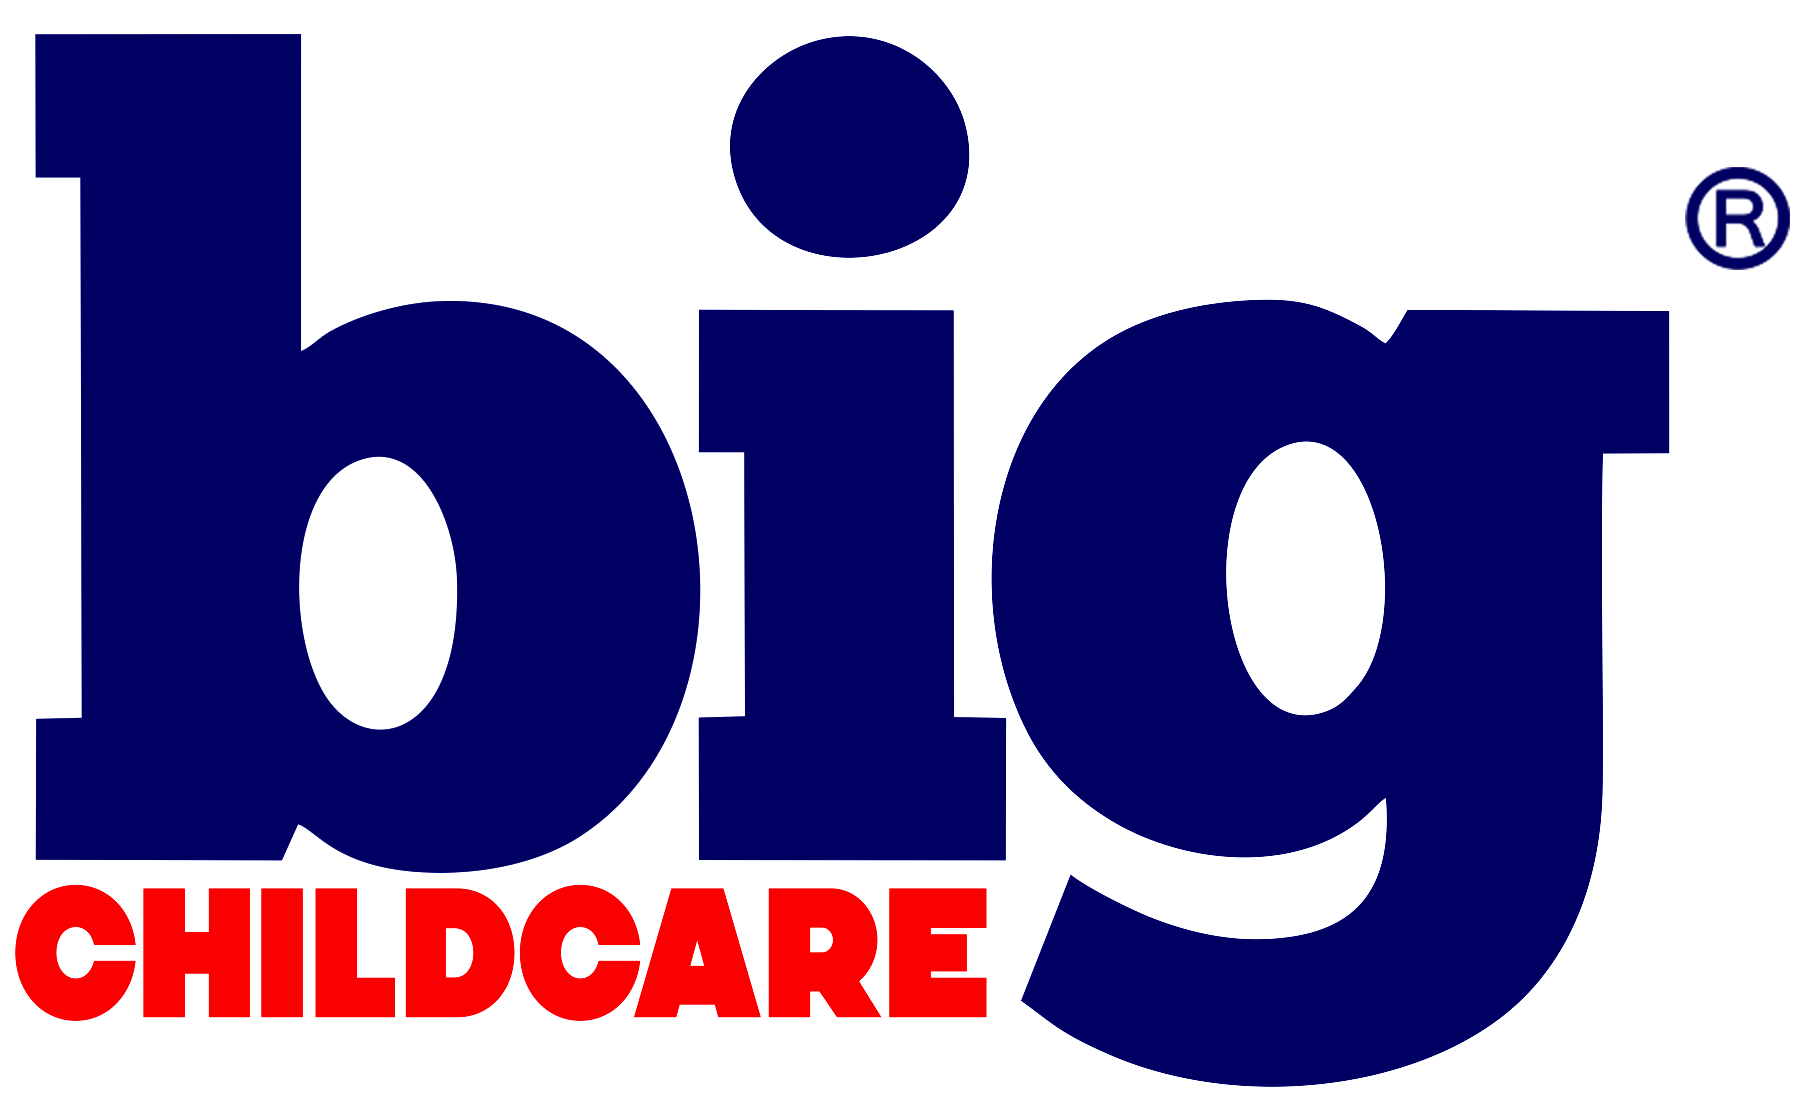 Big Childcare Logo